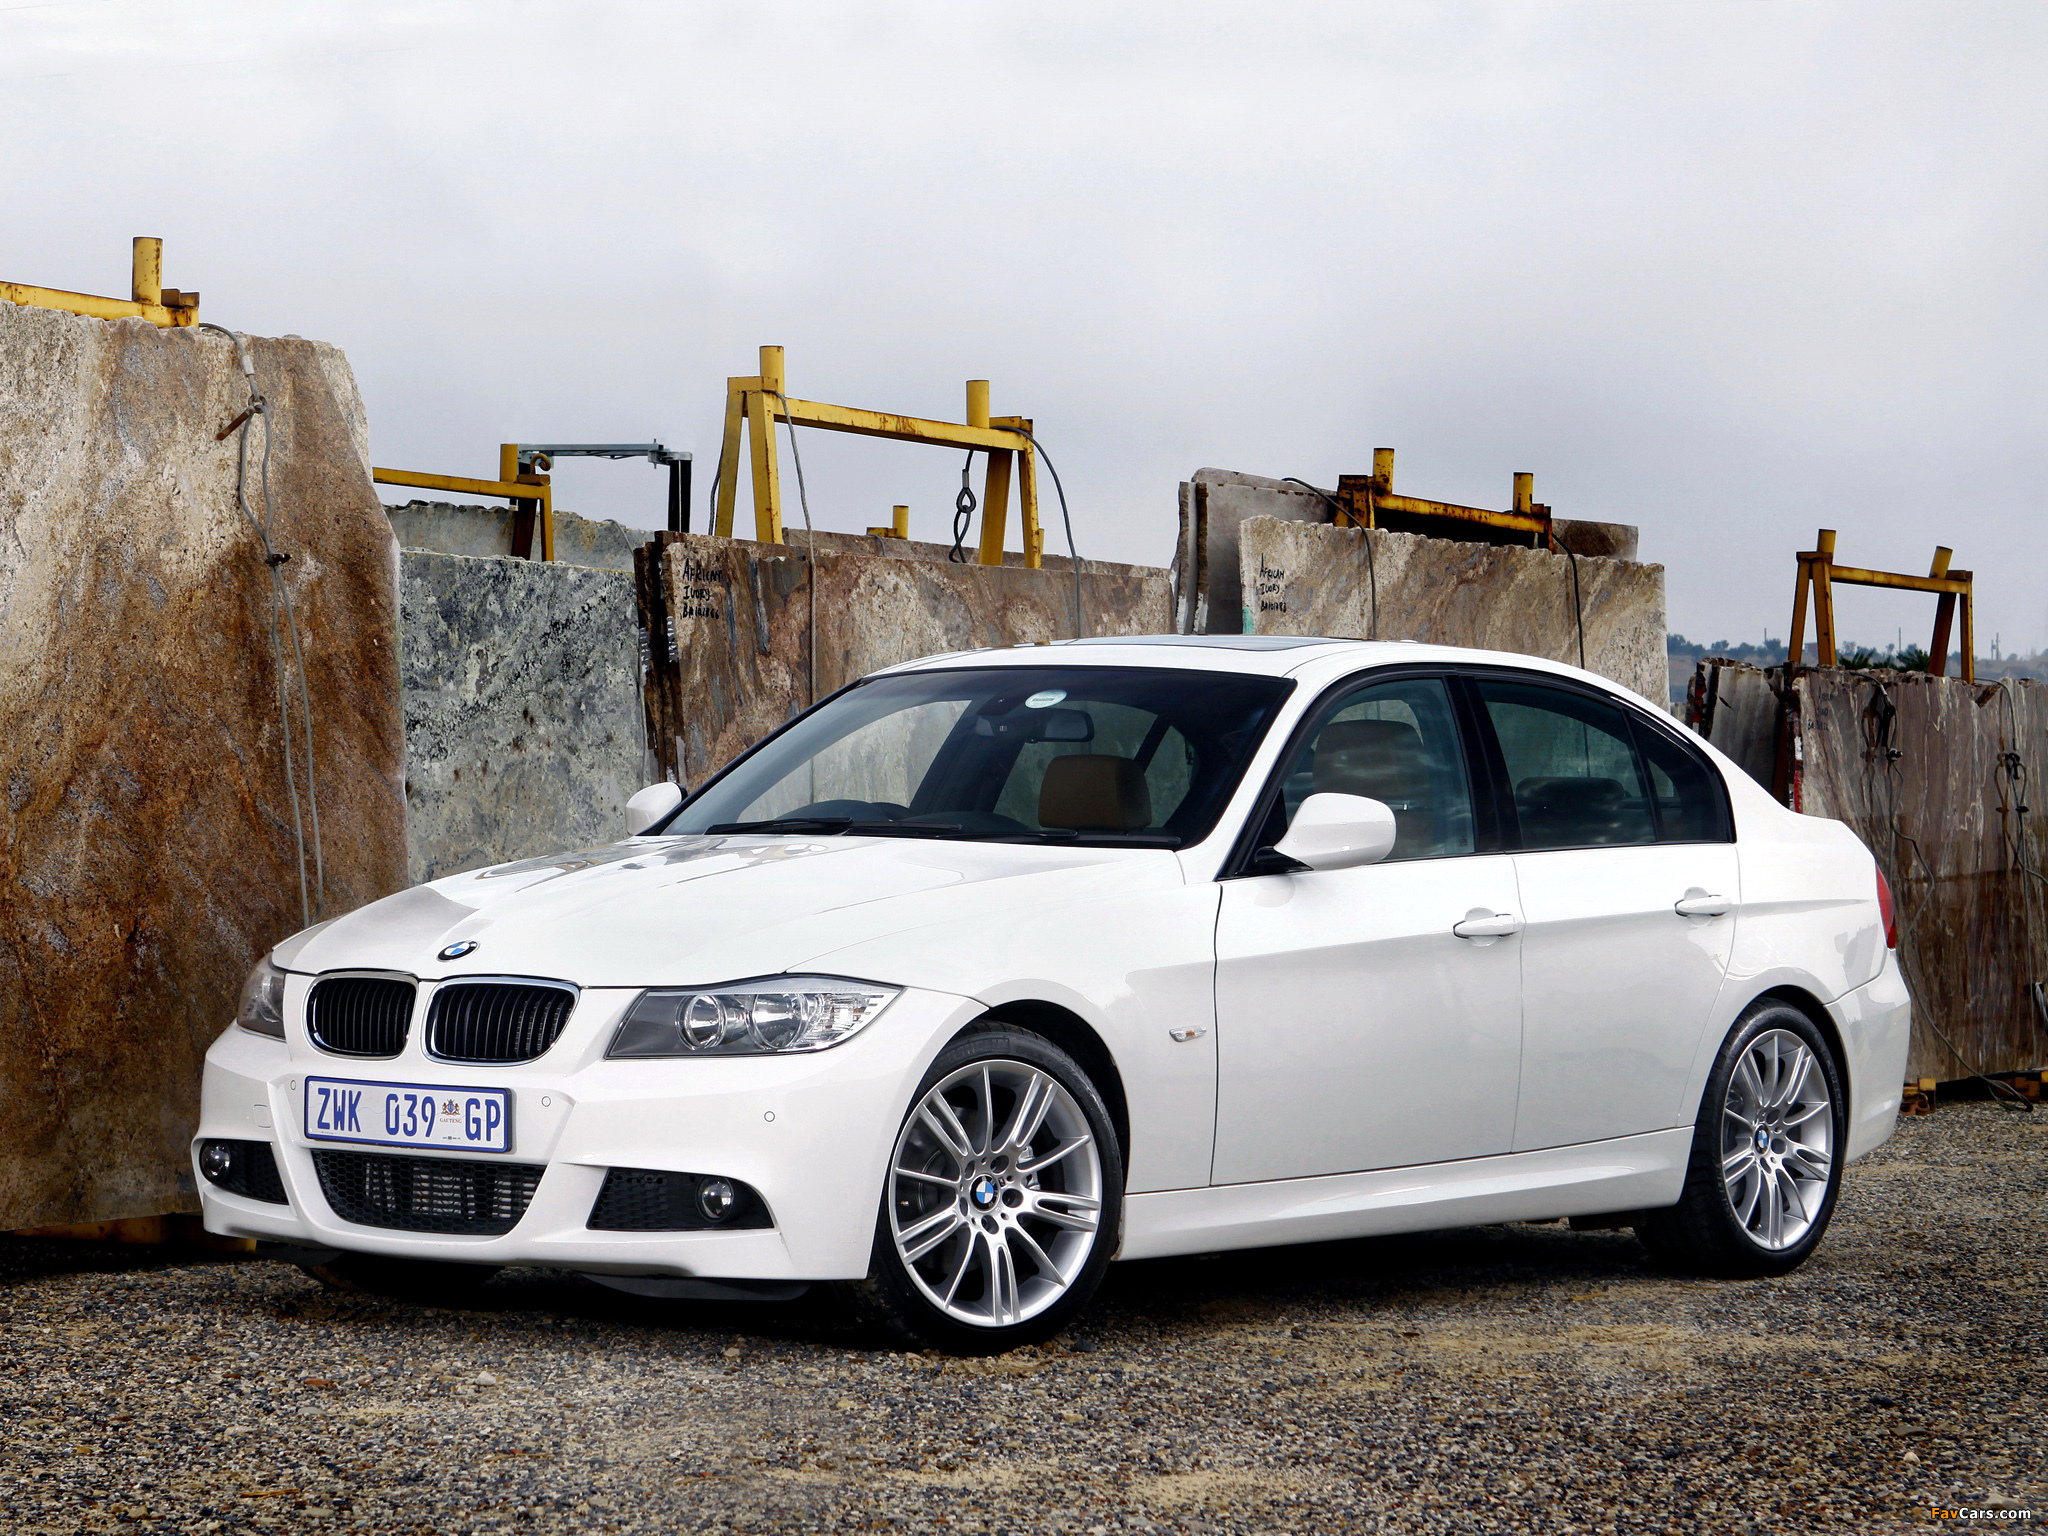 Images of bmw 320d efficientdynamics edition e90 2009 11 - Bmw 320d Efficientdynamics Edition Za Spec E90 2009 11 Wallpapers